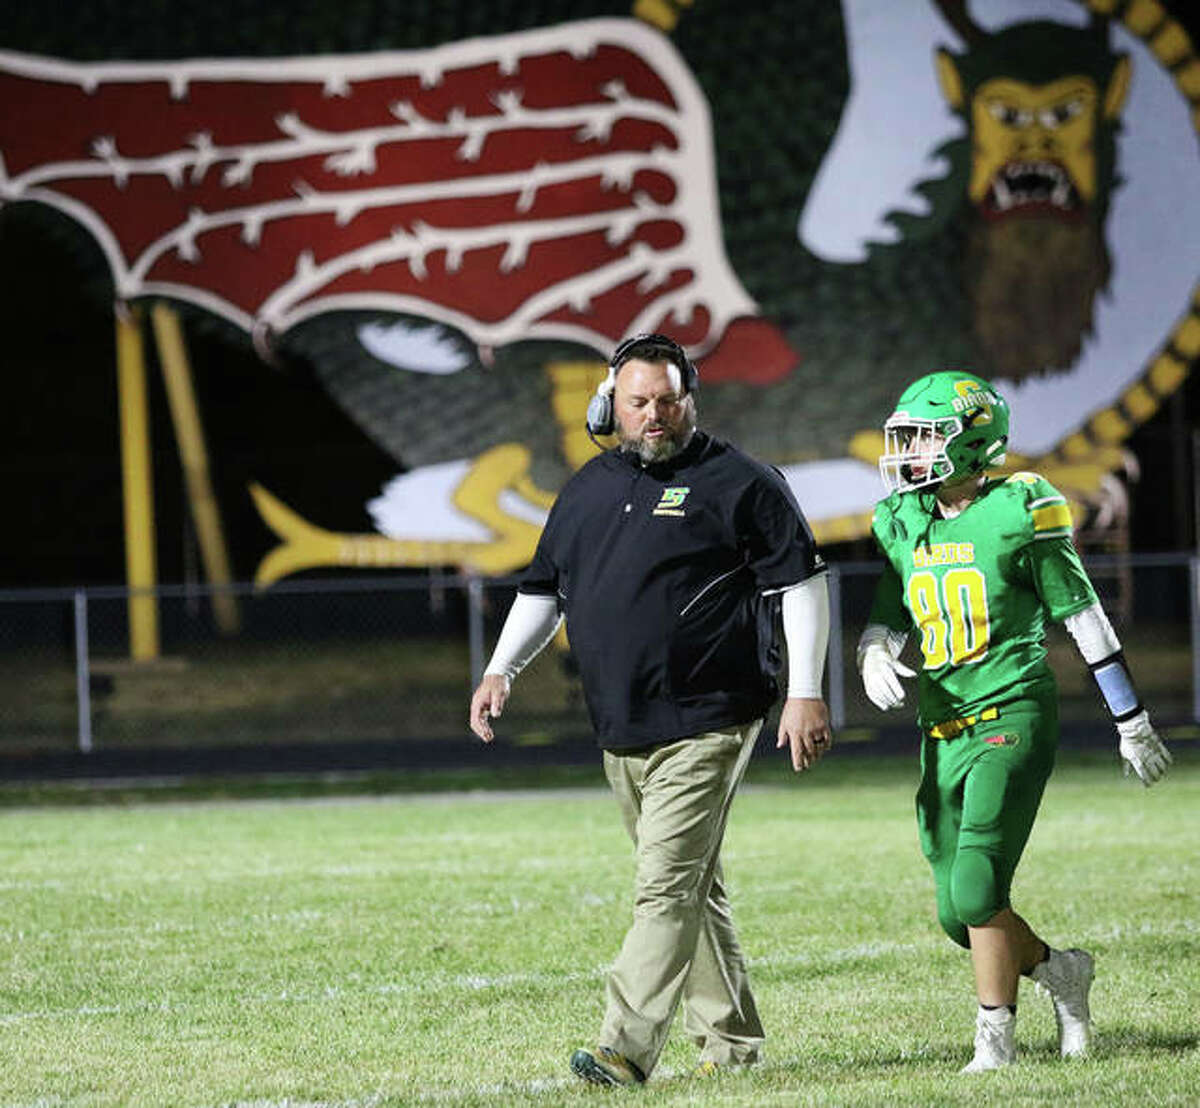 Southwestern coach Pat Keith (left) walks onto the field with one of his players during a game in 2019 at Knapp Field in Piasa.